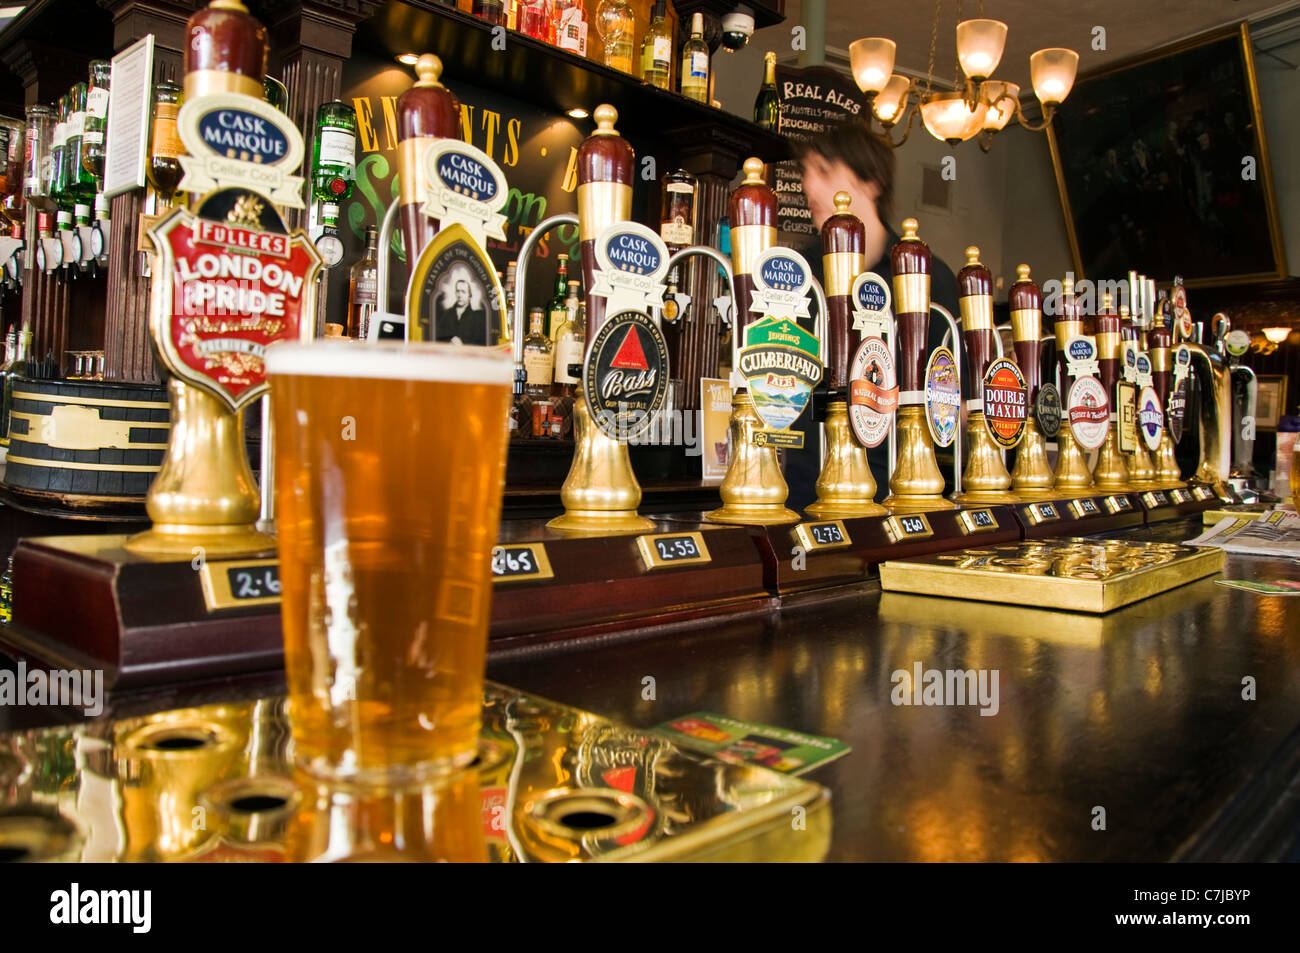 real ale hand pumps in a bar pub stock photo royalty free image 39127866 alamy. Black Bedroom Furniture Sets. Home Design Ideas